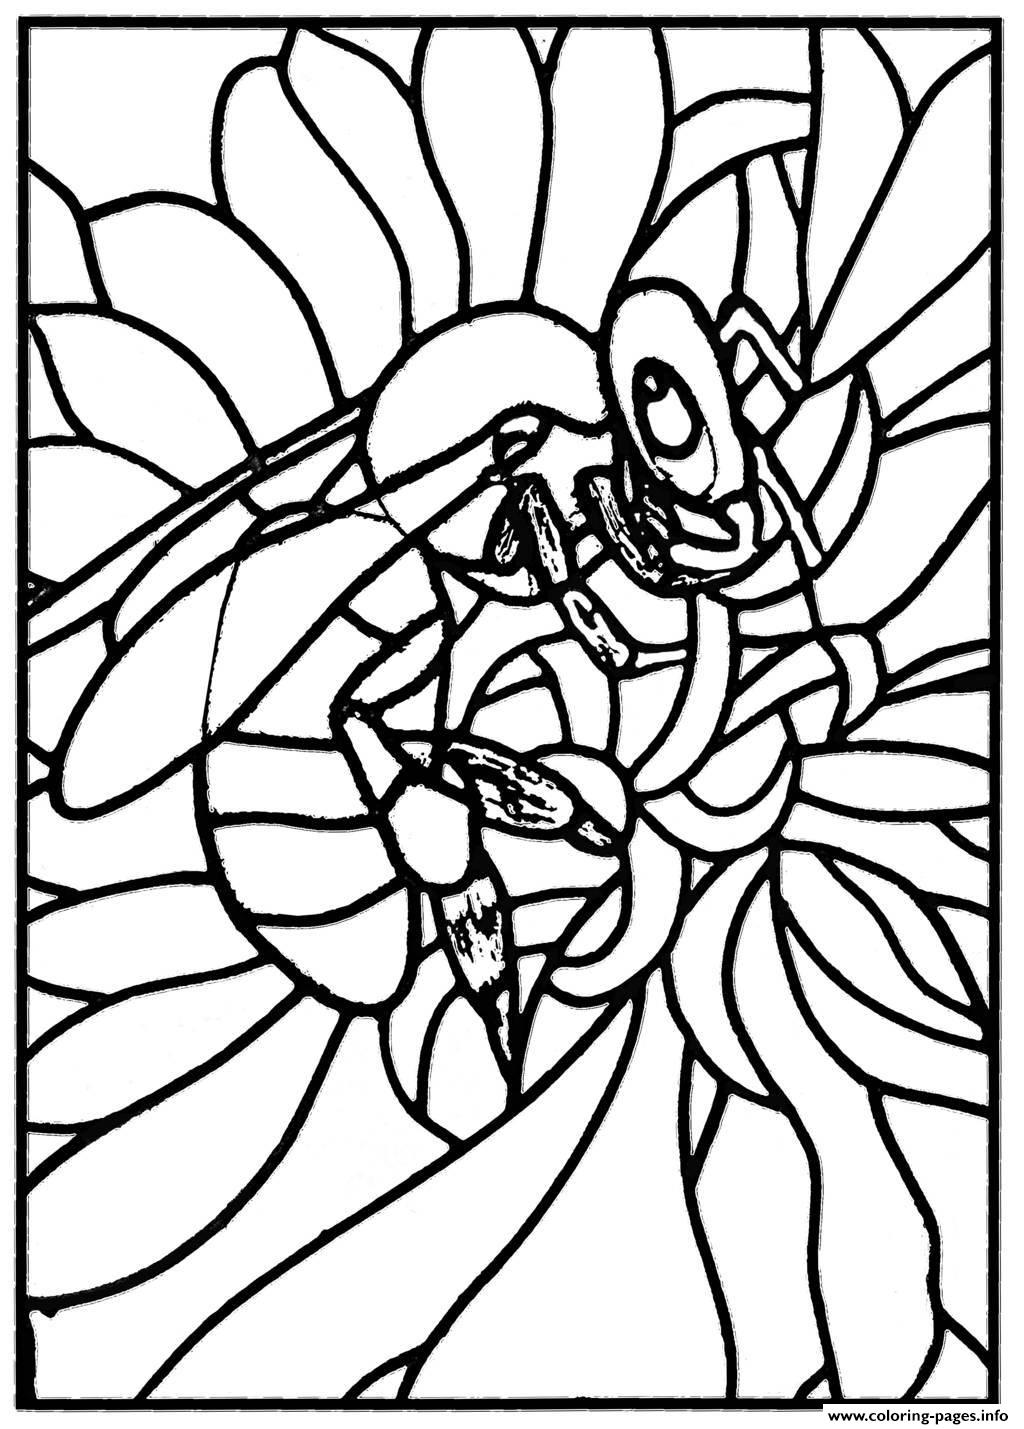 Adult Stained Glass Bee Workshop Jb Tosi 2010 Coloring Pages Printable